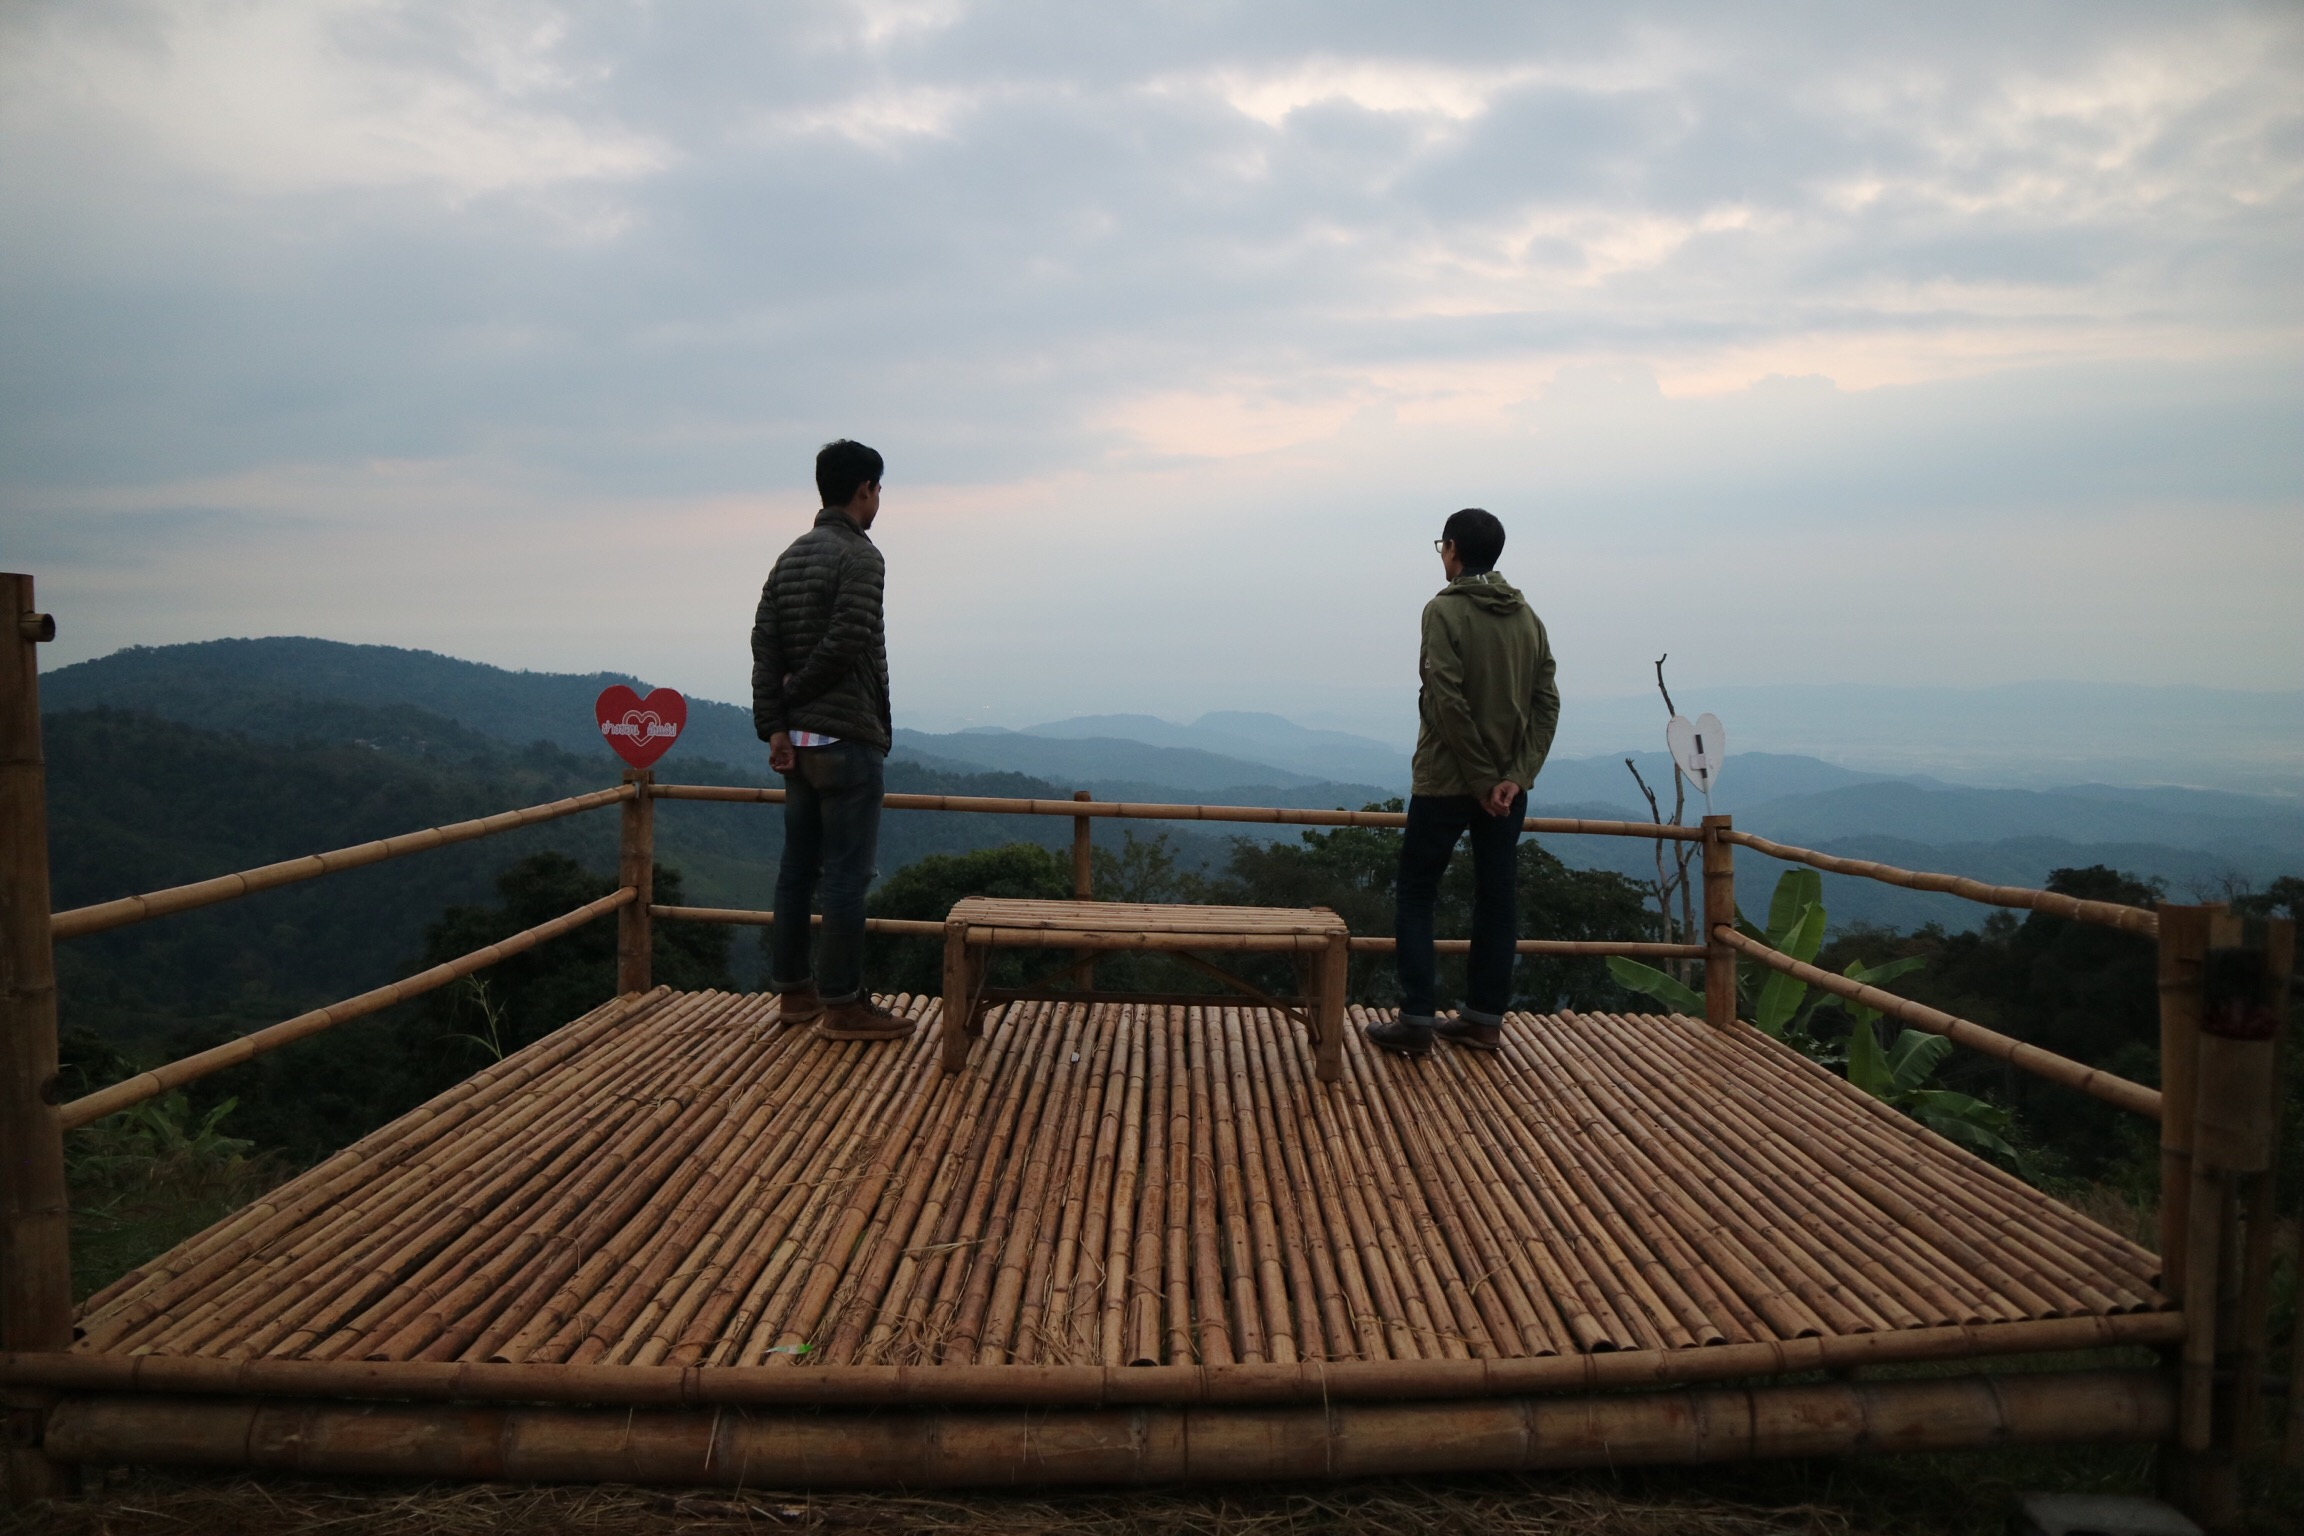 Sunrise on a cloudy morning overlooking the foothills leading to Chiang Rai - Fuadi and I contemplate the future of sustainable specialty coffee.